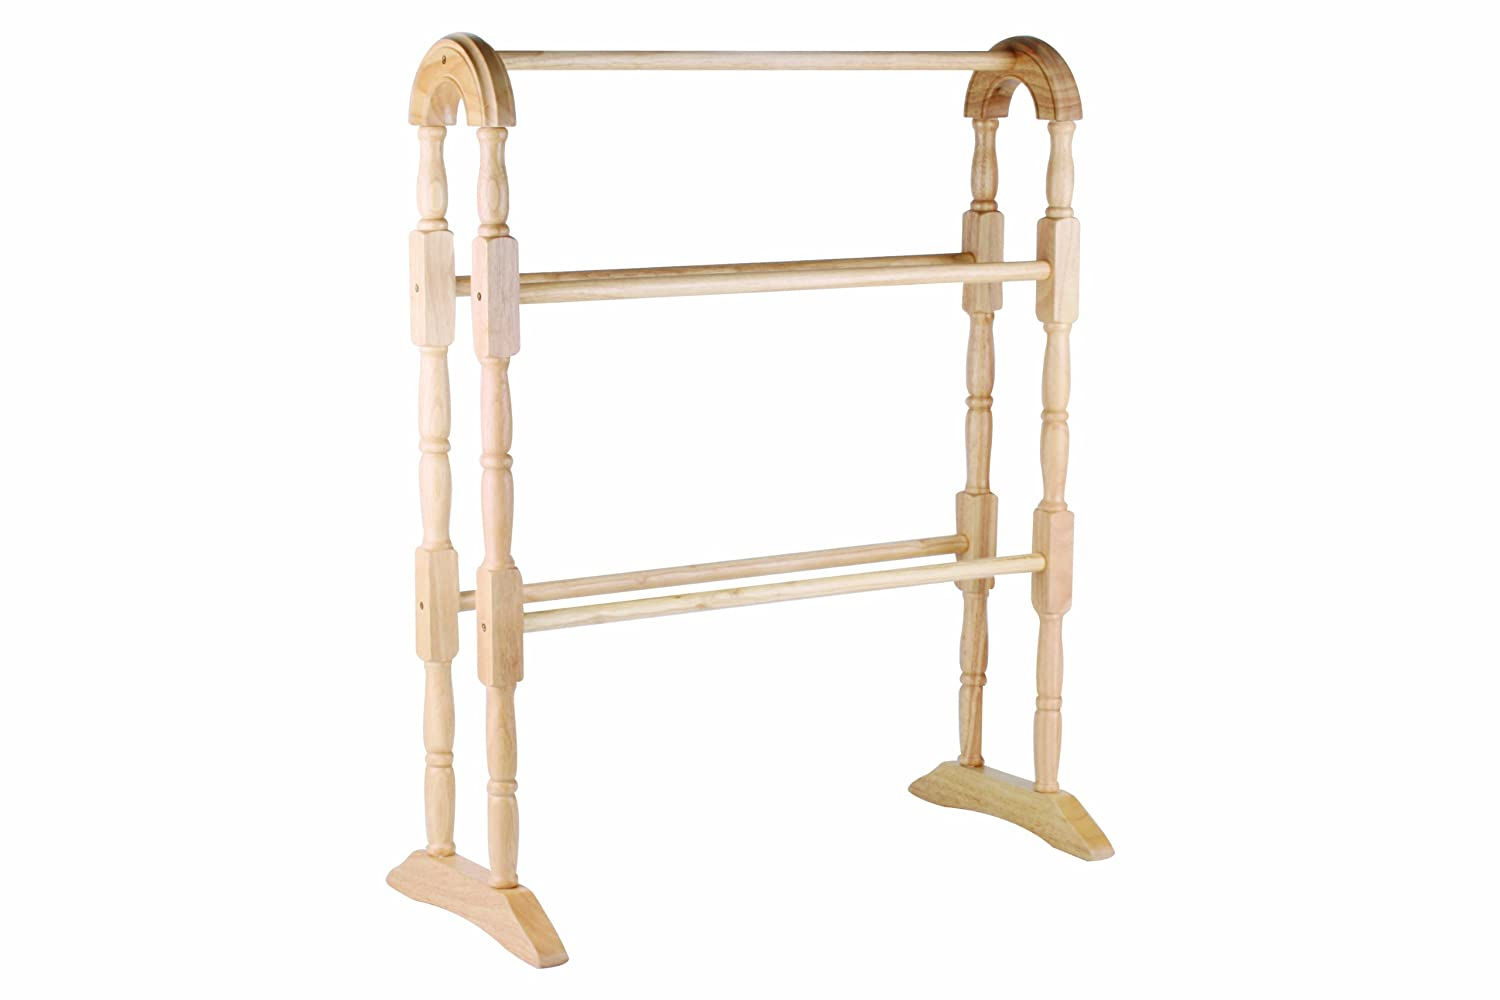 Apollo 1-Piece 63 x 78 x 30 cm Hevea Towel Rail Natural 2135